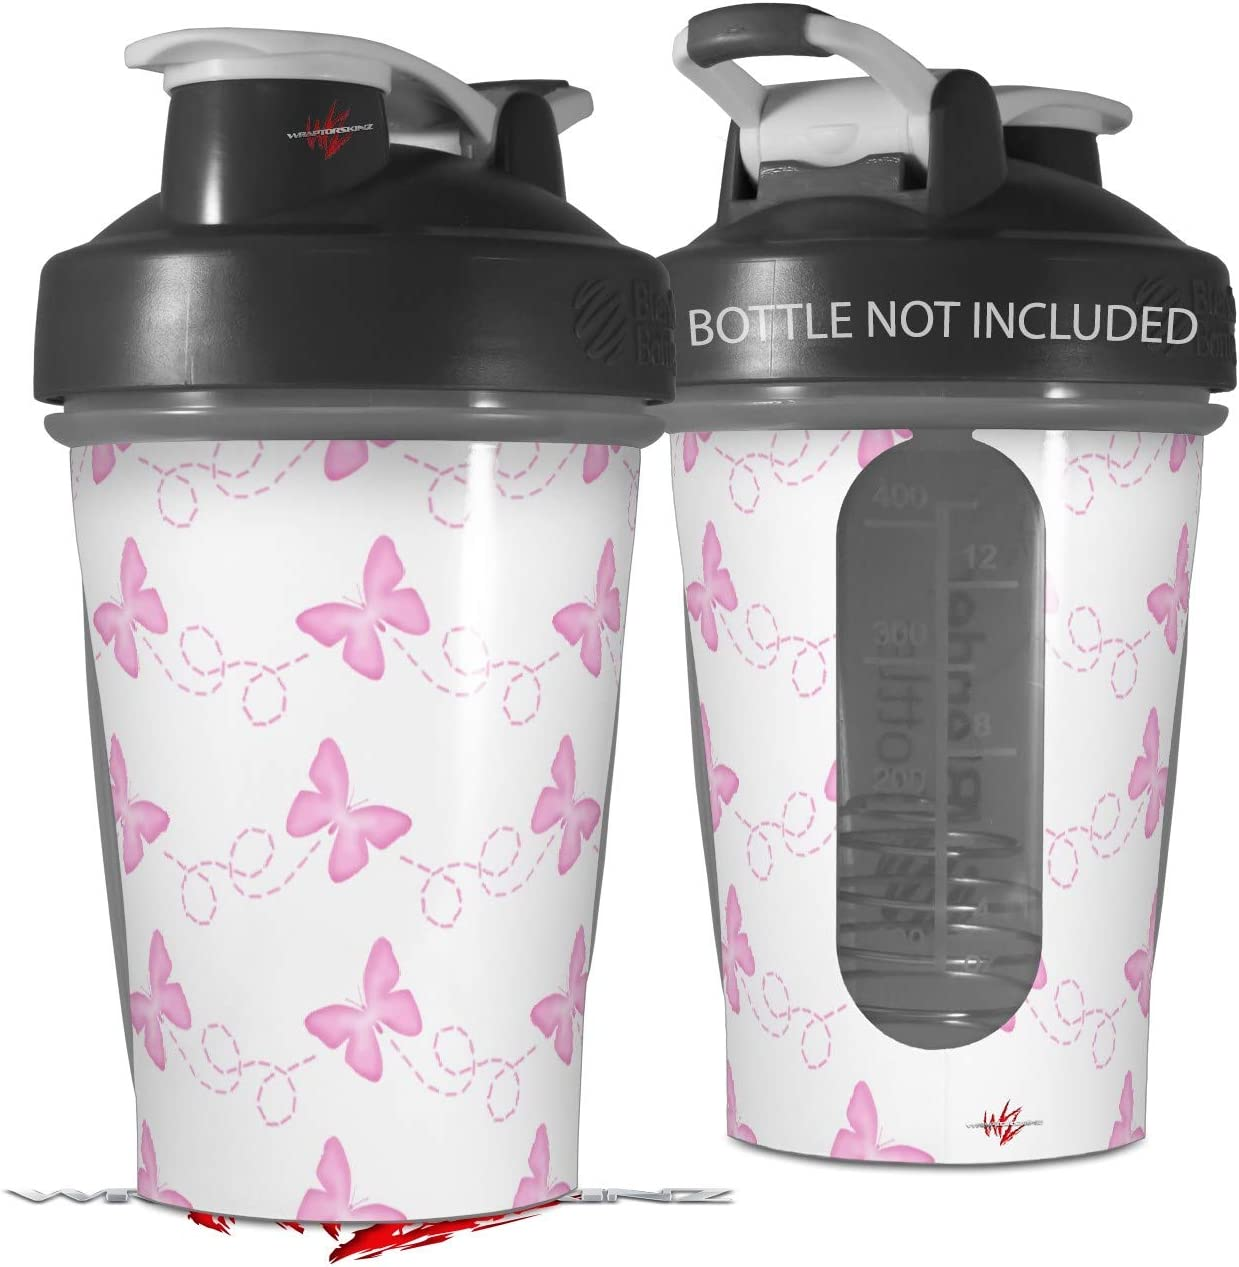 Decal Style Skin Wrap works with Blender Bottle 20oz Pastel Butterflies Pink on White (BOTTLE NOT INCLUDED)